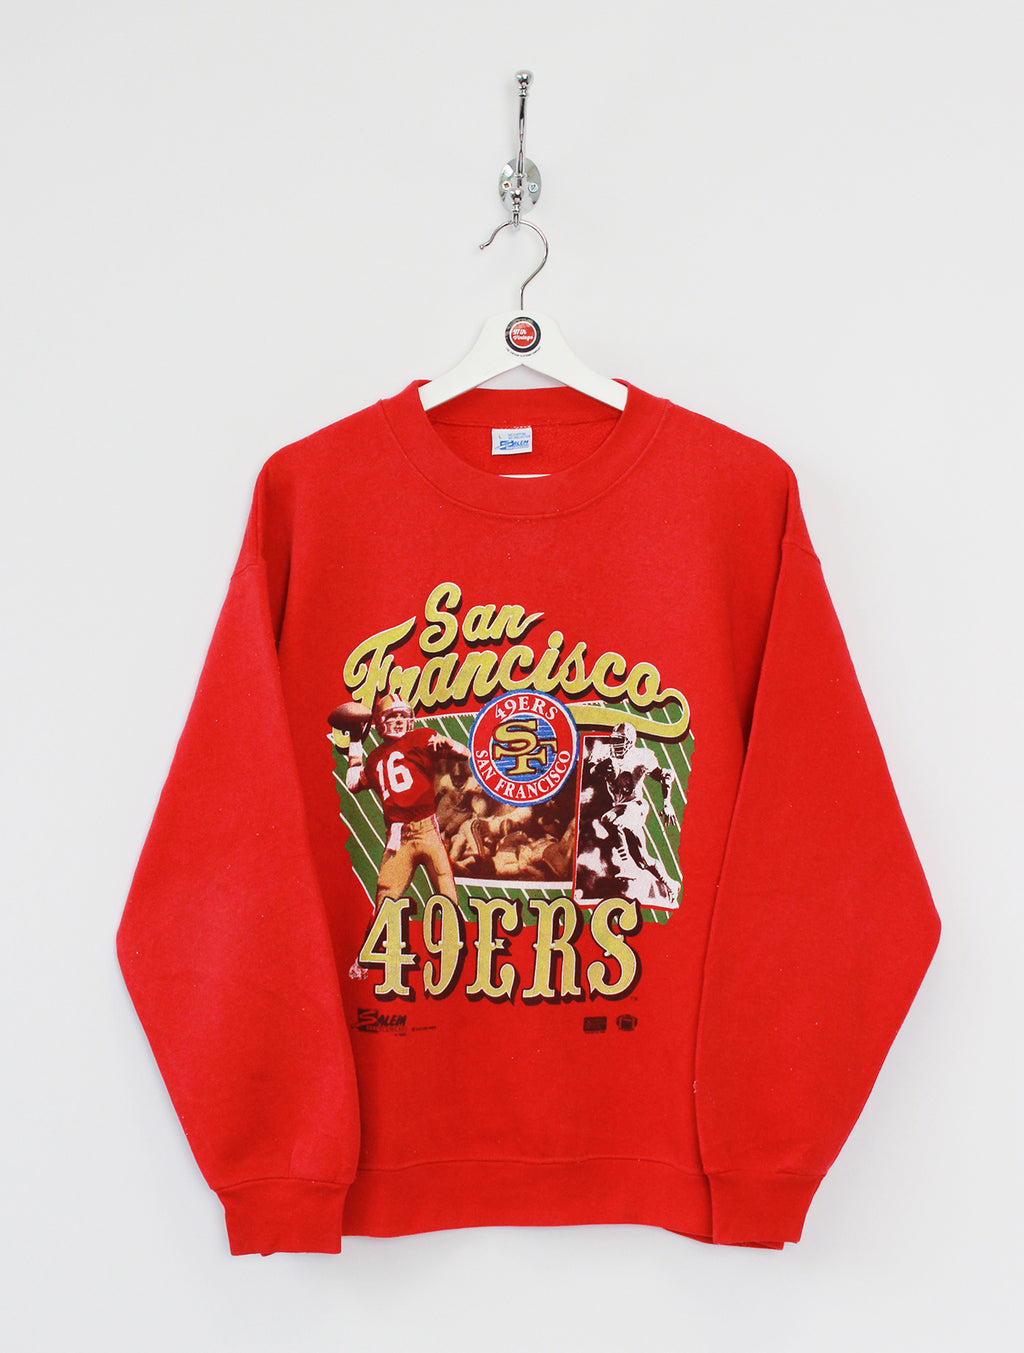 1990 San Francisco 49ers Sweatshirt (M)